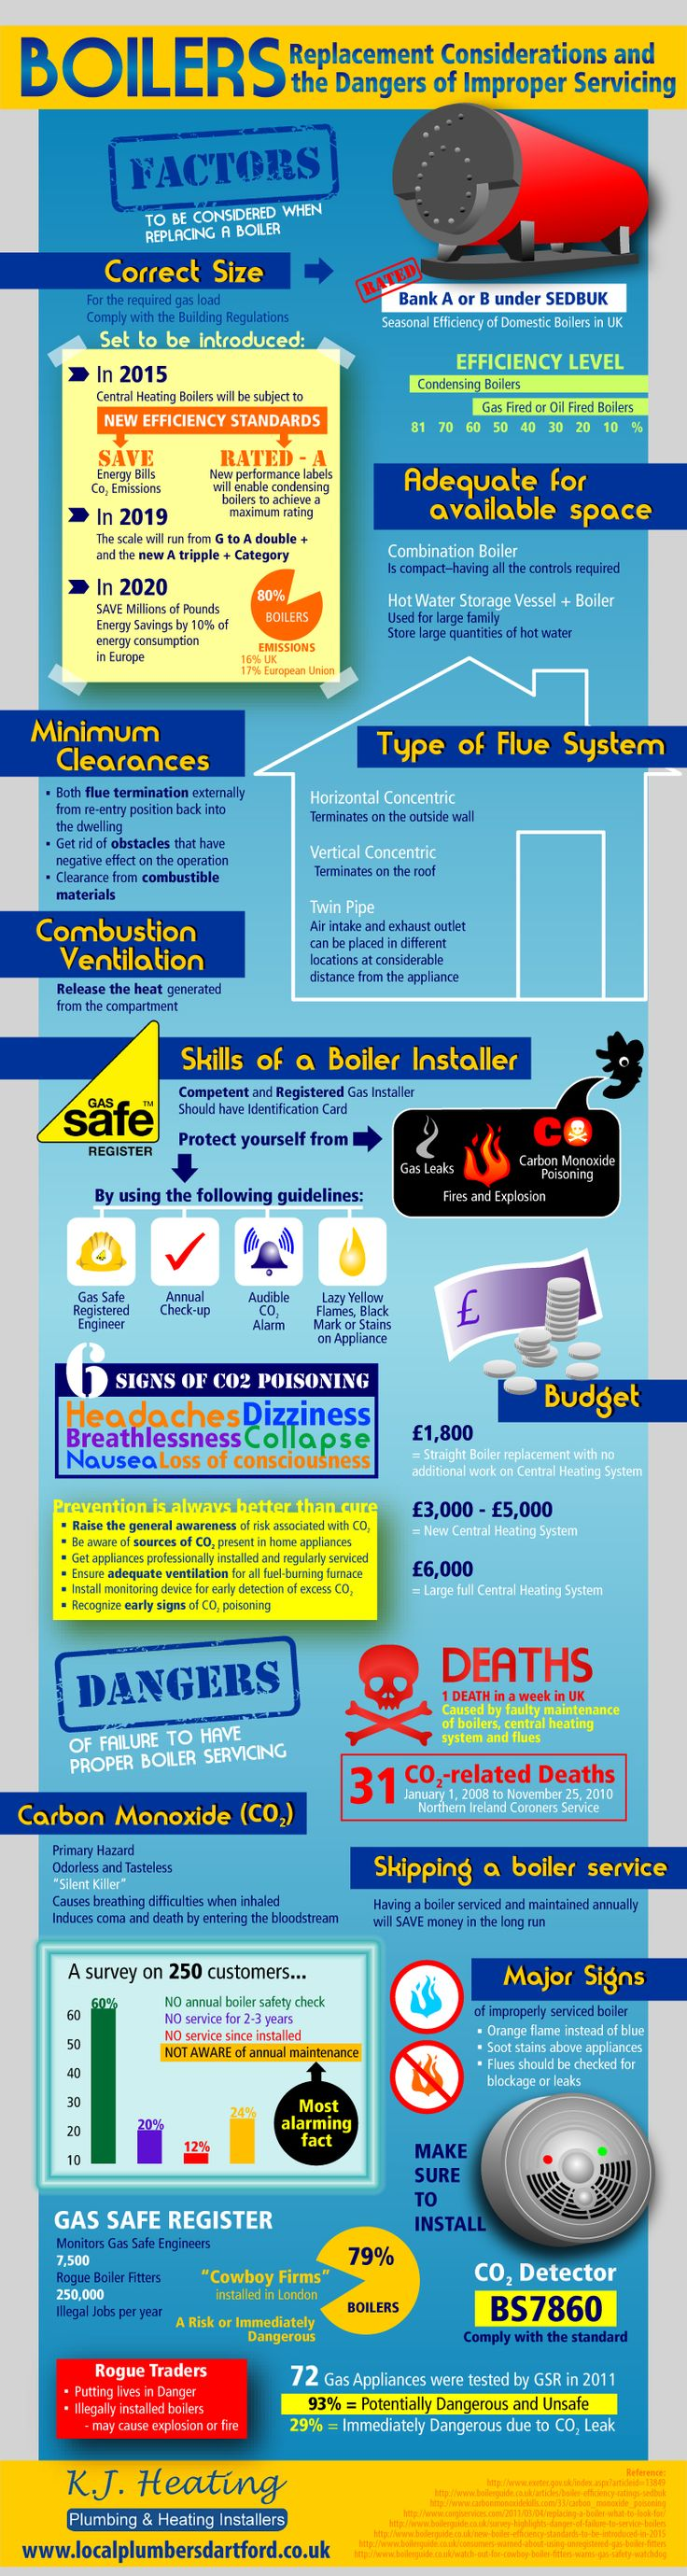 Boilers: Replacement Considerations and the Dangers of Improper Servicing